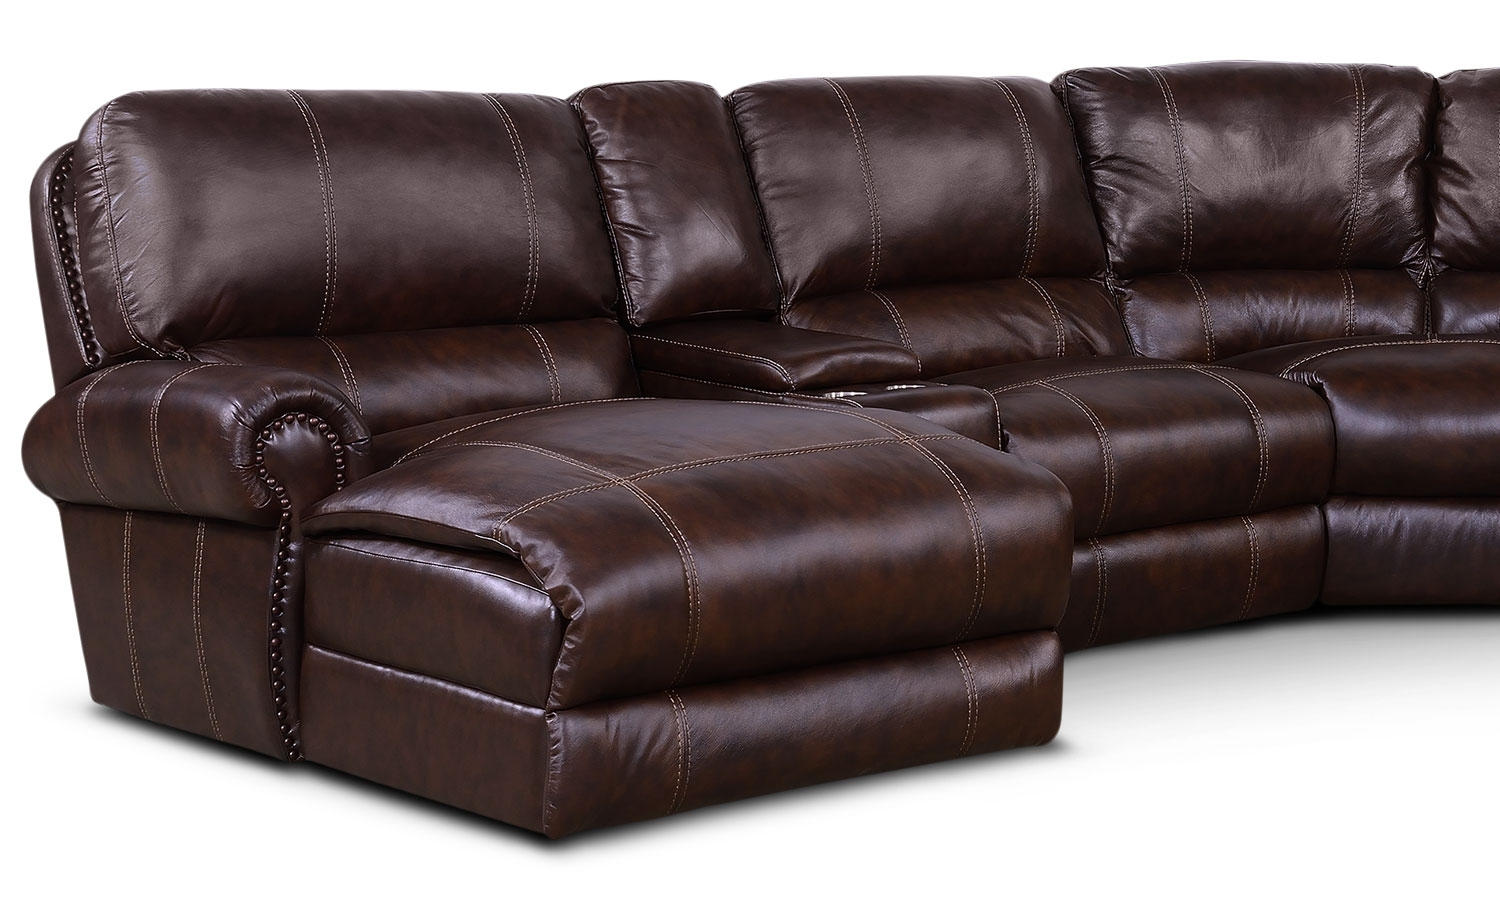 Dartmouth 6 Piece Power Reclining Sectional W/ Left Facing Chaise Throughout Norfolk Chocolate 3 Piece Sectionals With Raf Chaise (Image 11 of 33)